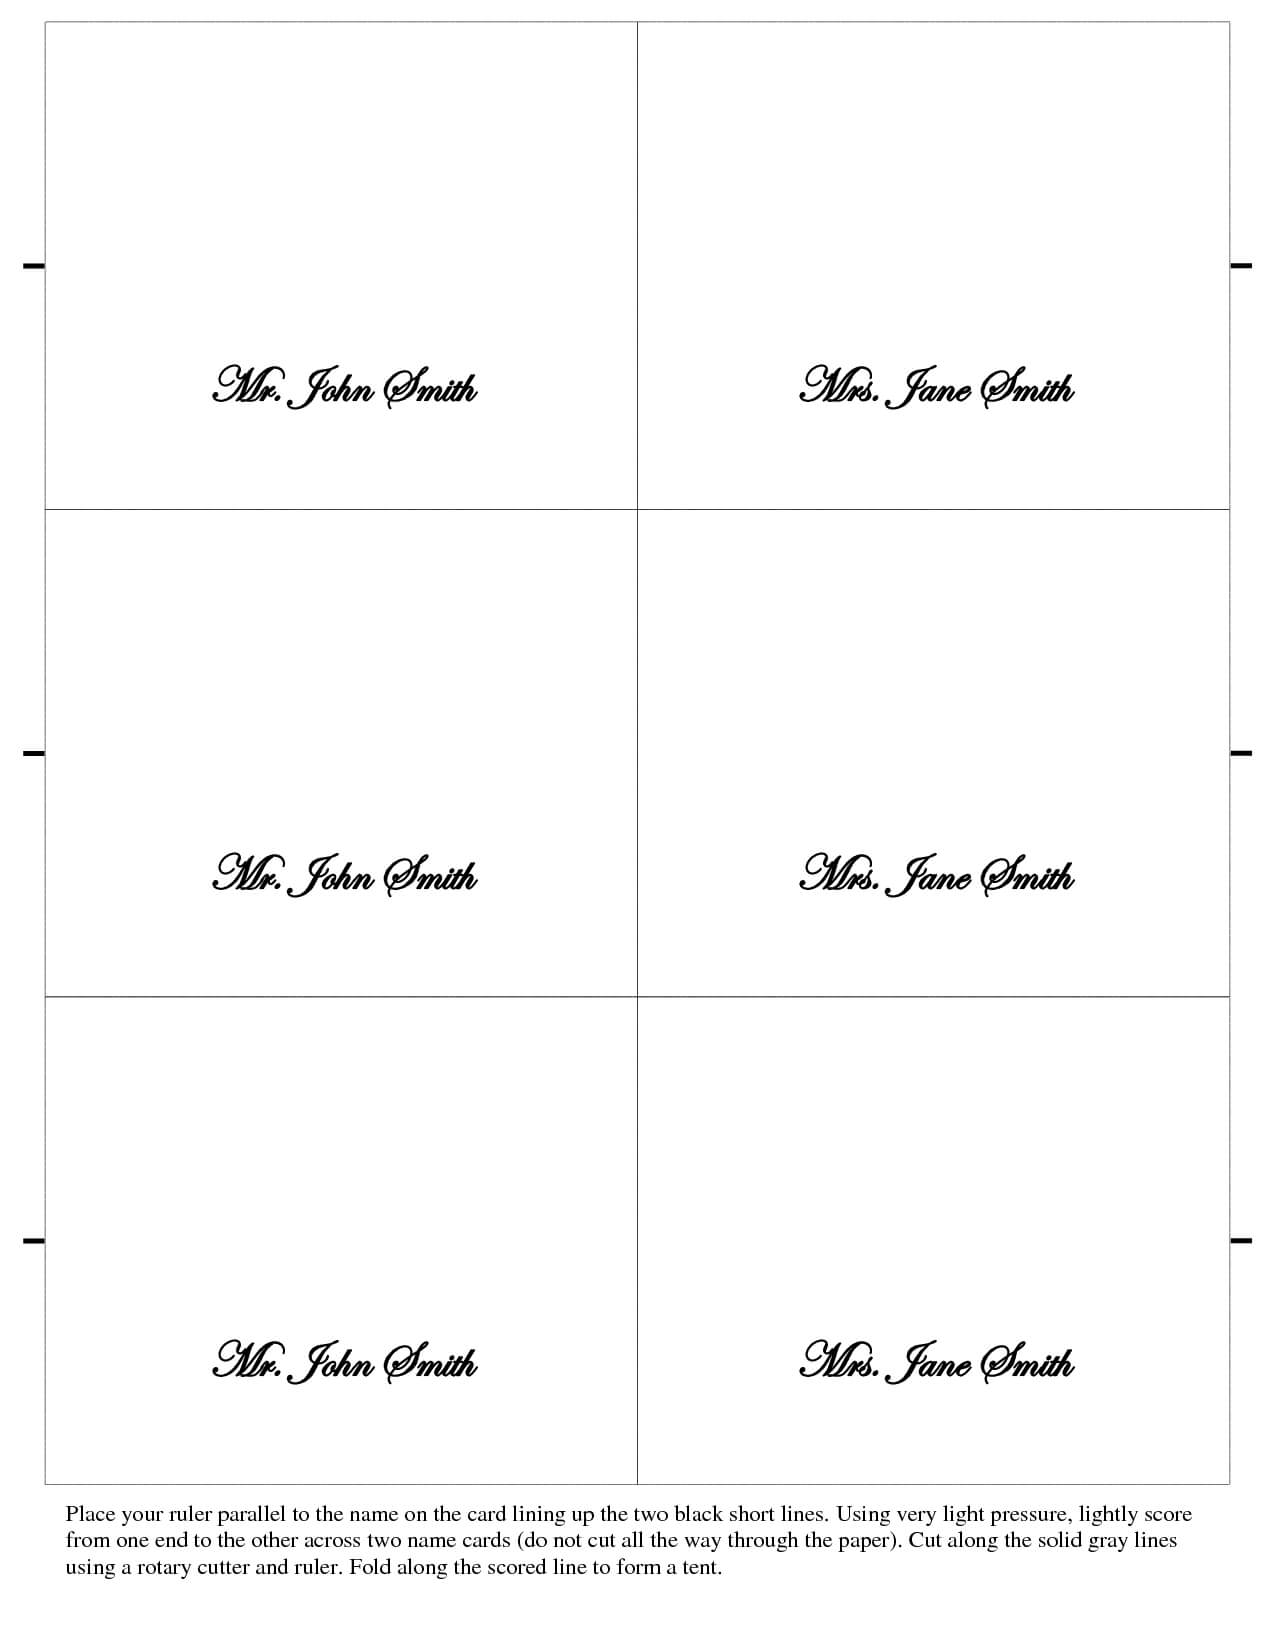 003 Free Place Card Template Ideas Table Mwd108673 Vert Within Free Place Card Templates 6 Per Page